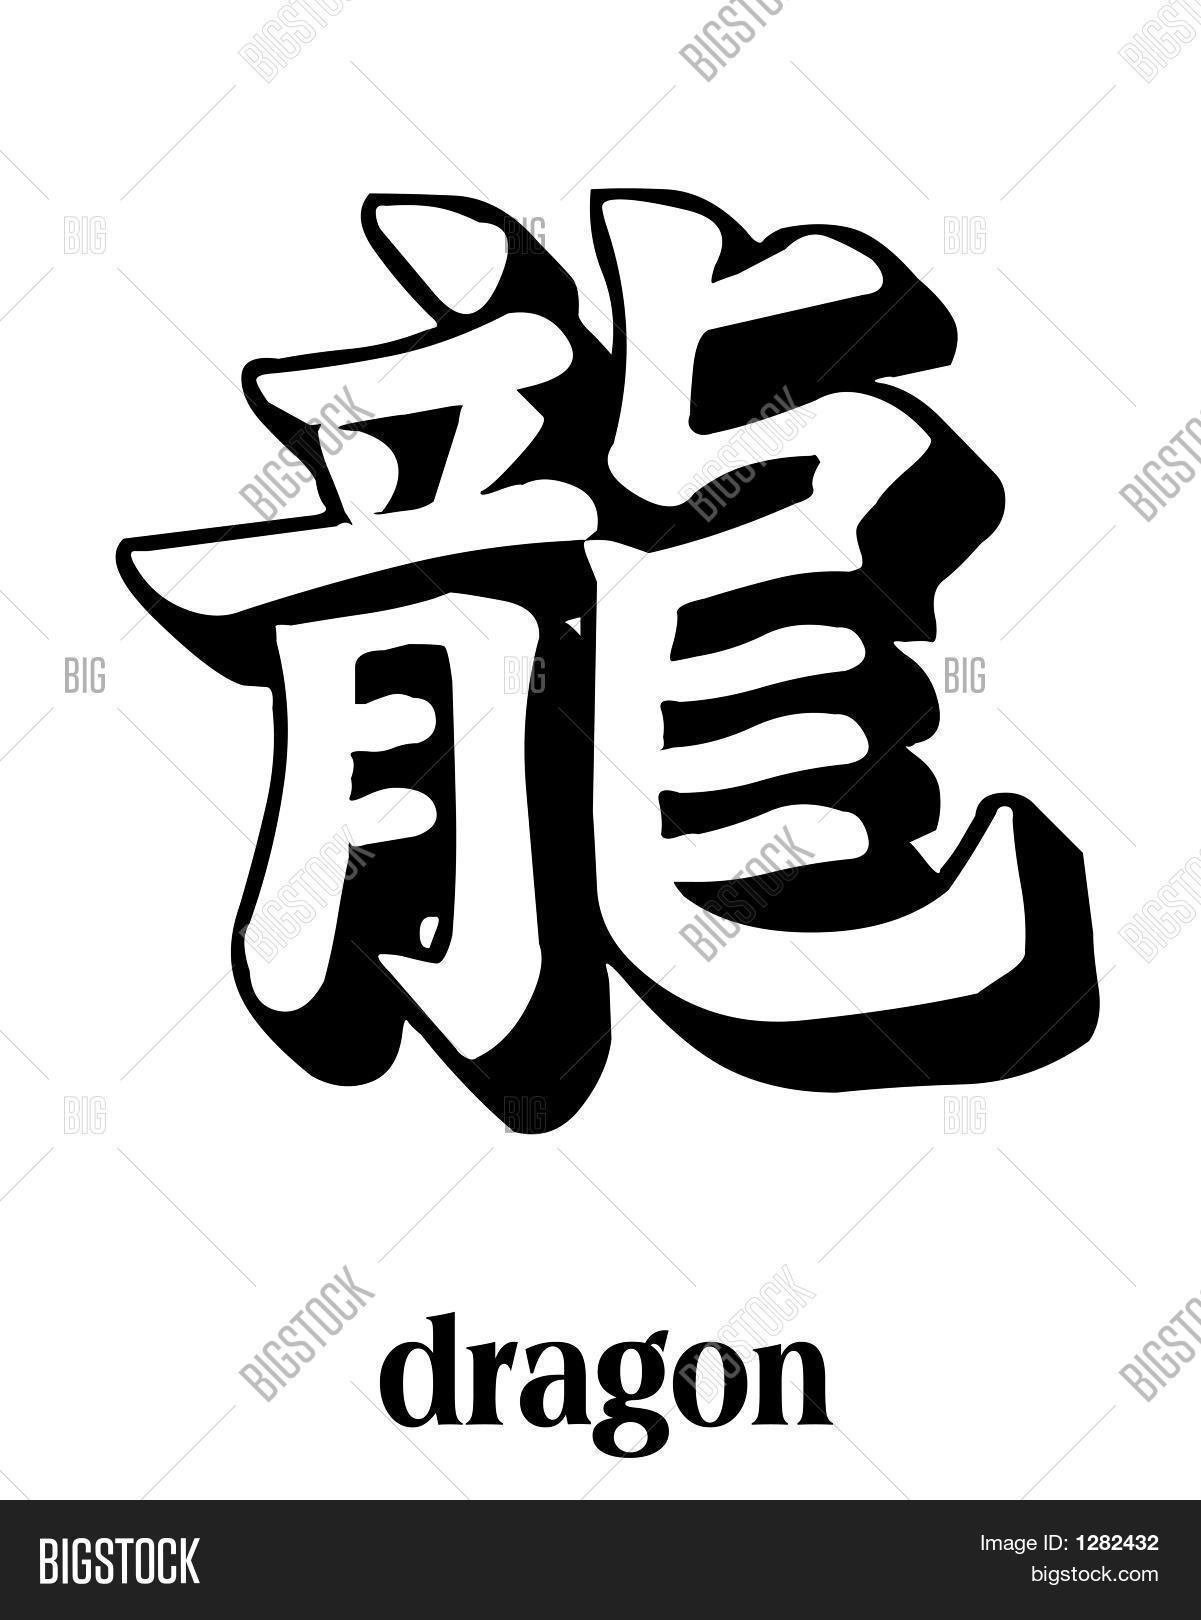 Dragon Chinese Image Photo Free Trial Bigstock